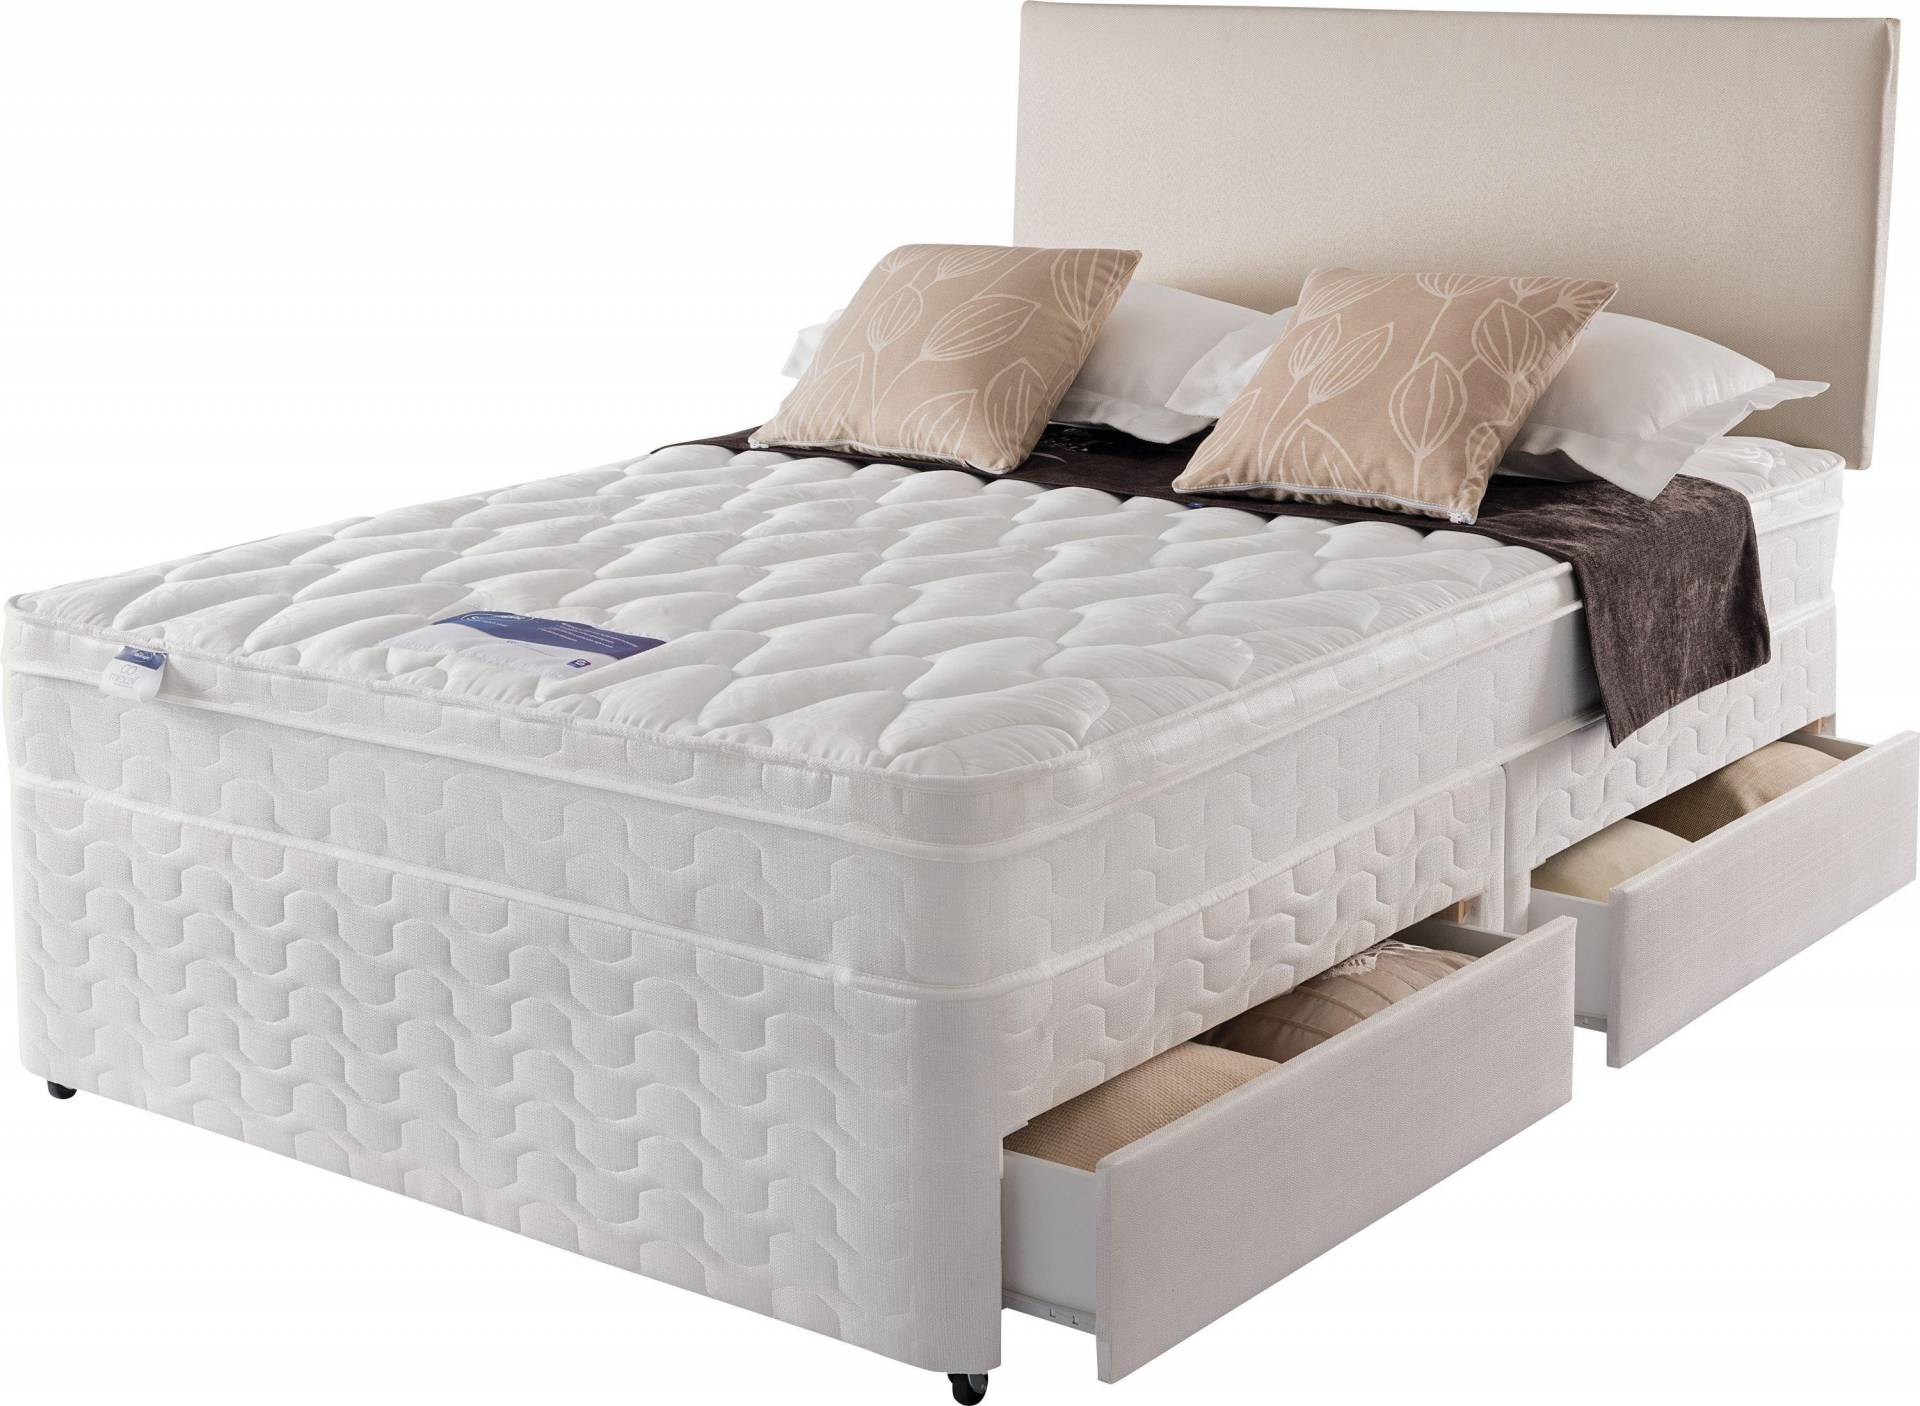 Silentnight - Auckland Luxury - Kingsize - Divan Bed - 4 Drawer from Silentnight